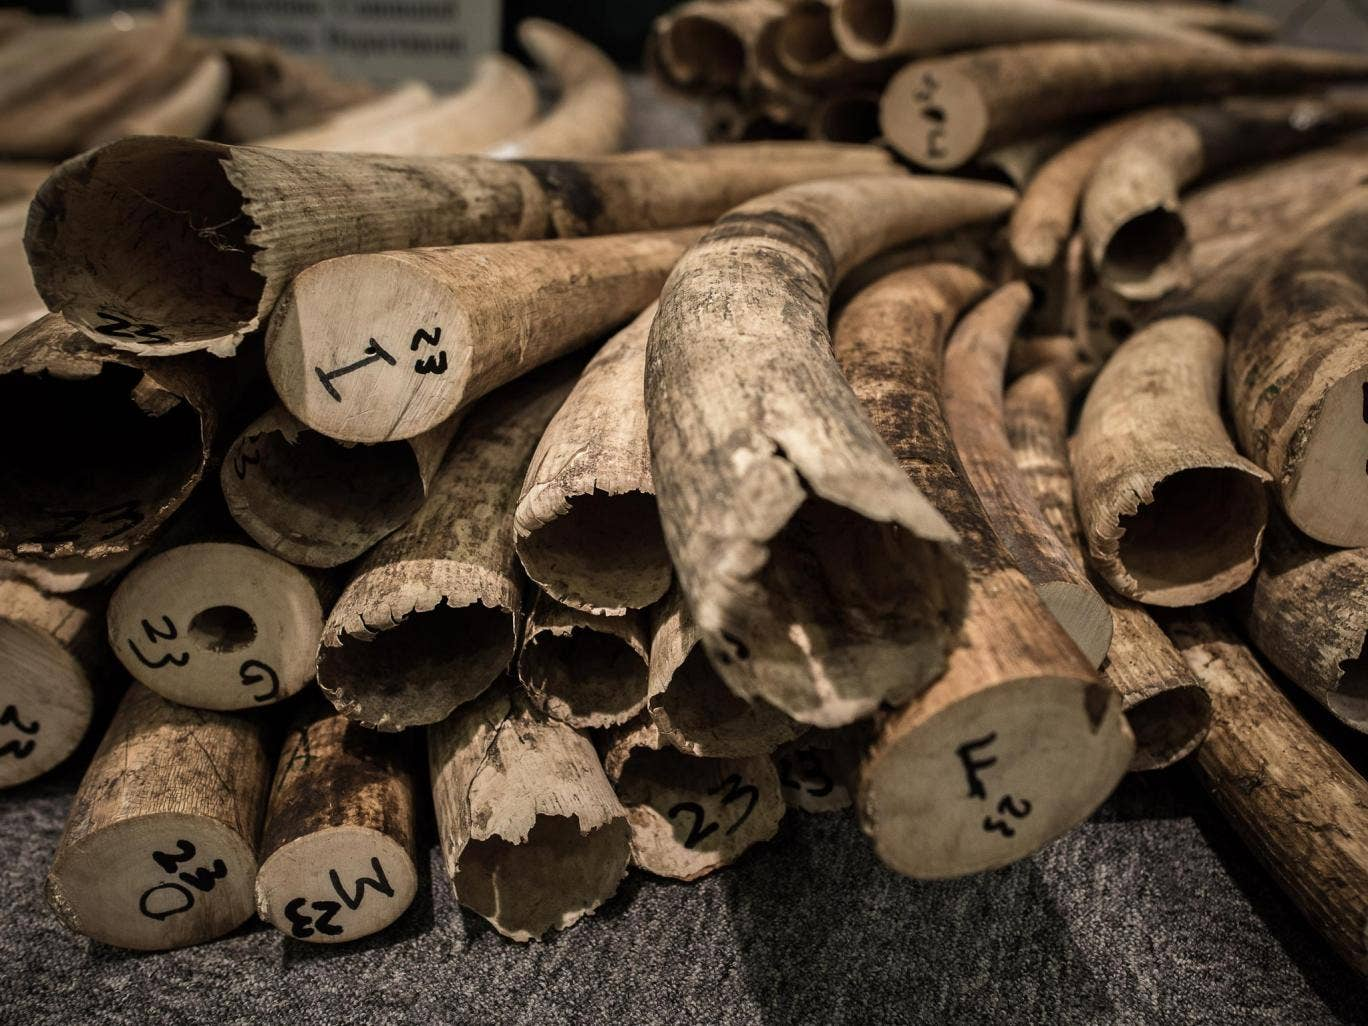 The Royal Family has been urged to get rid of objects made from ivory